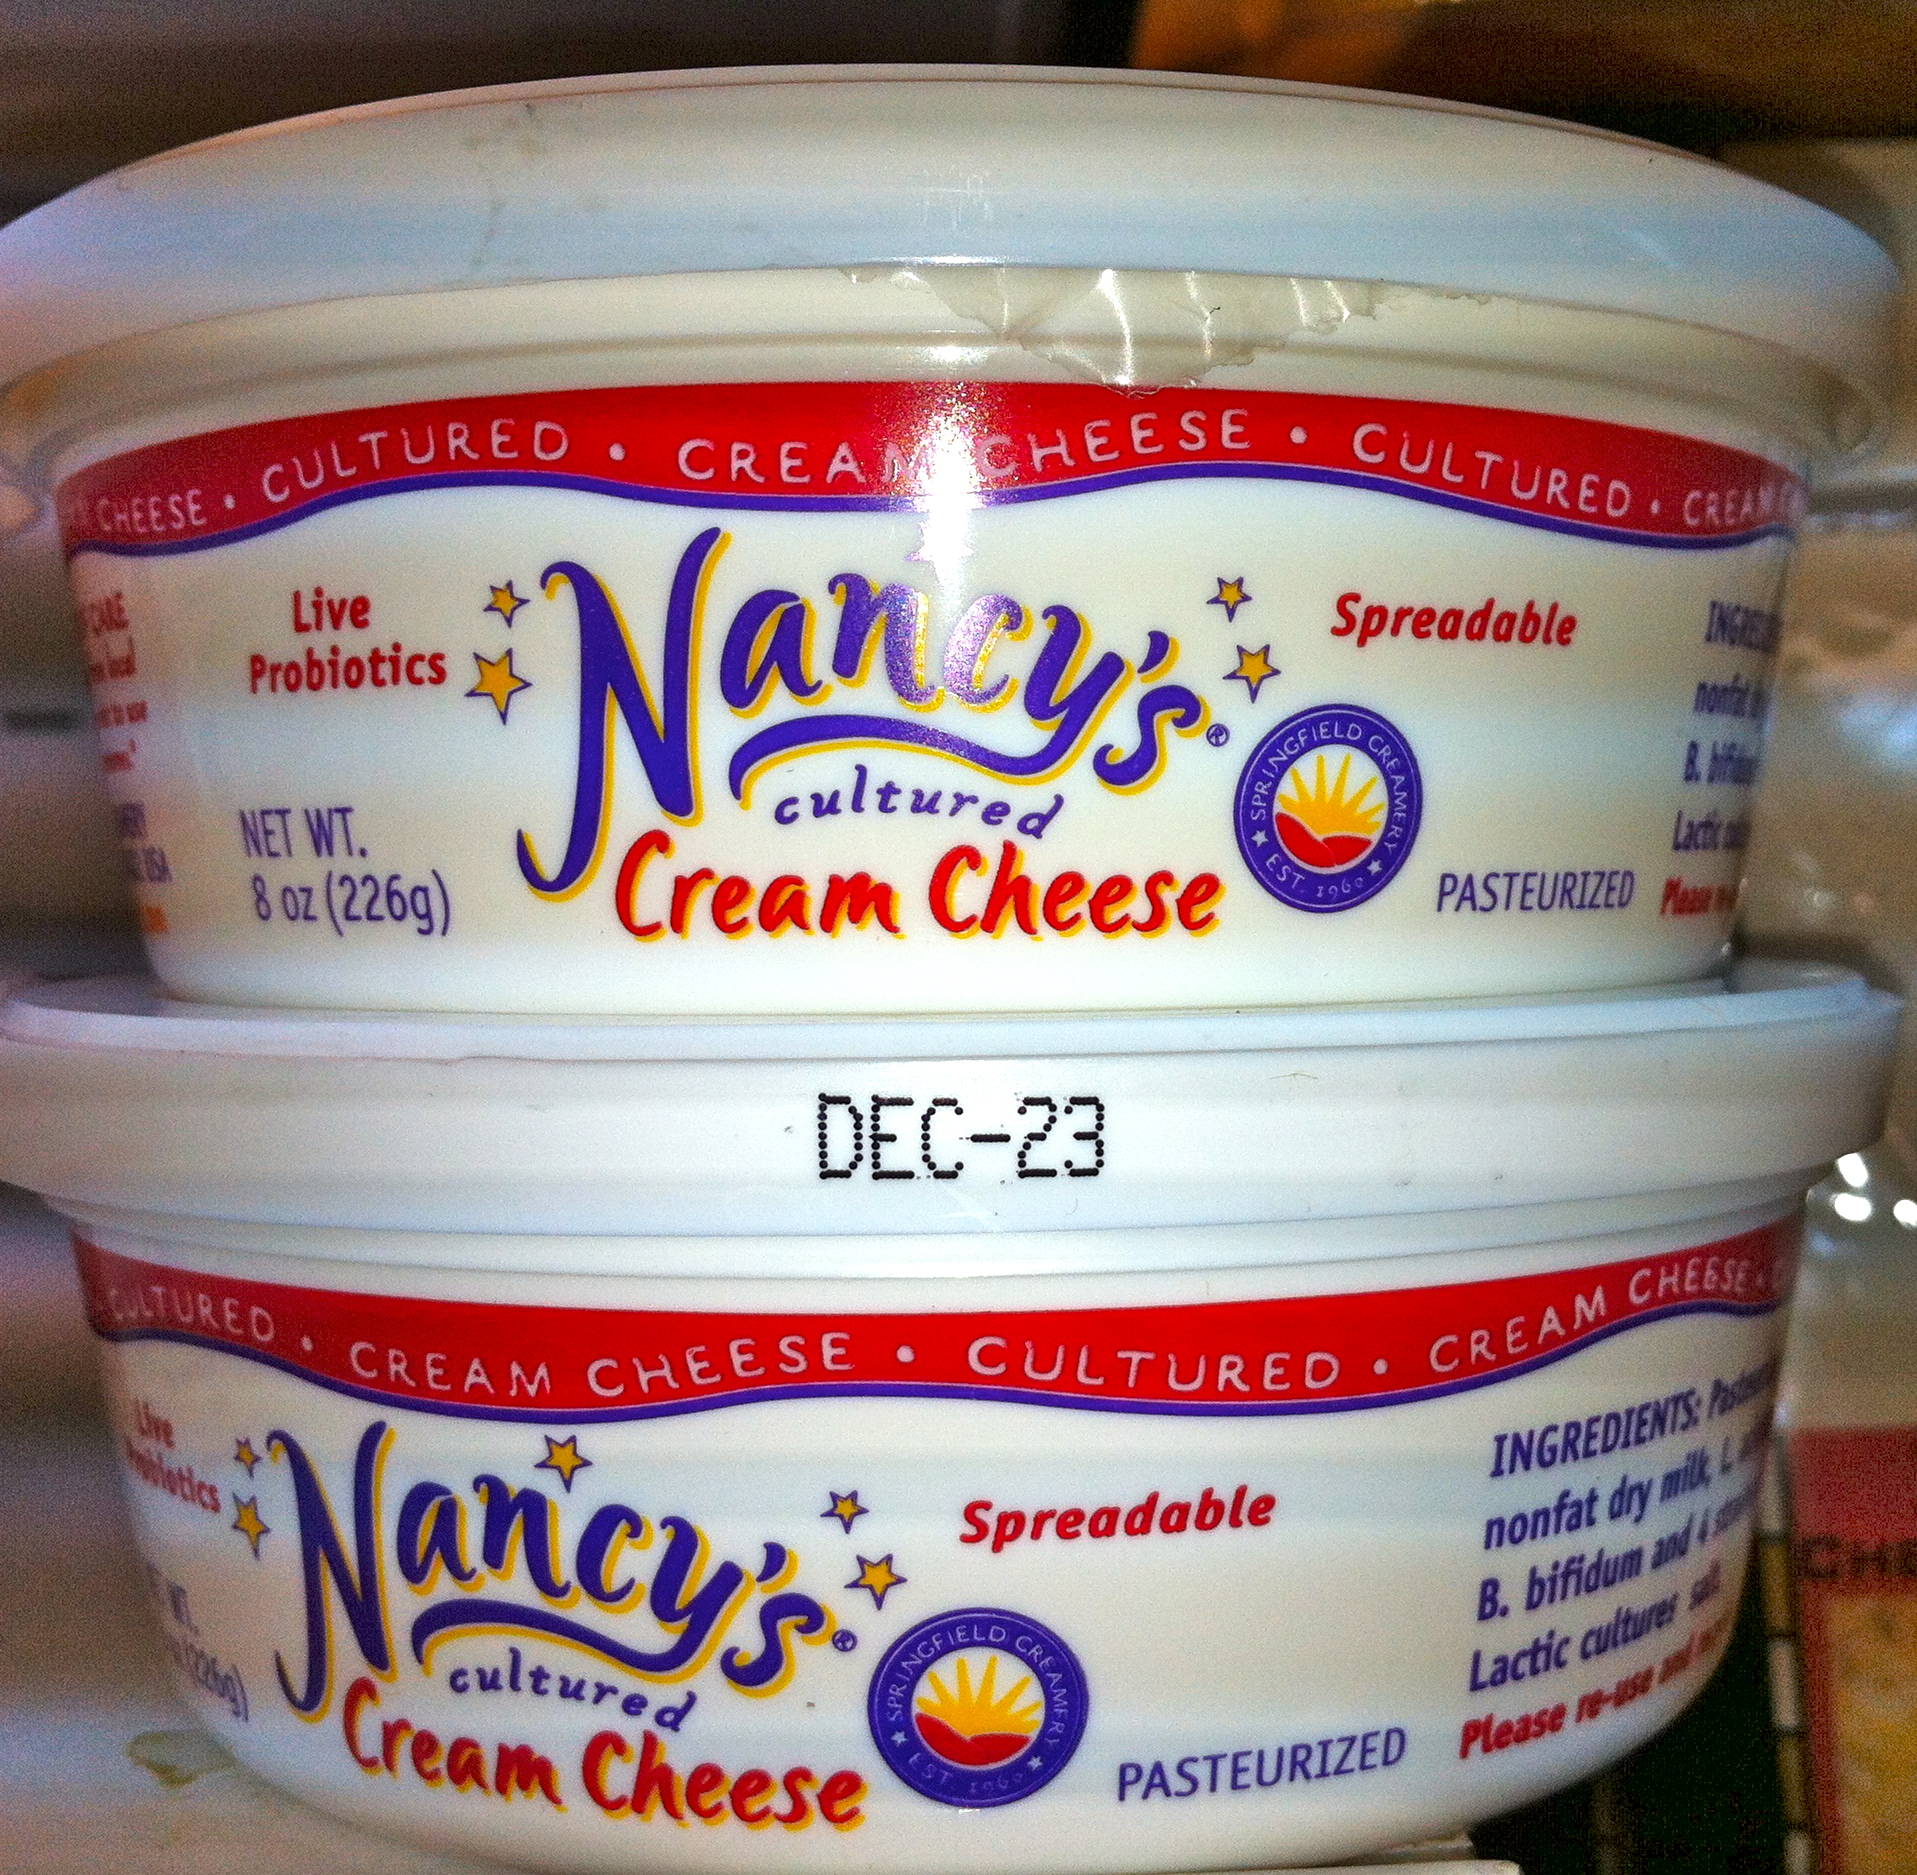 nancys cultured cream cheese has live active cultures in it - very unique products